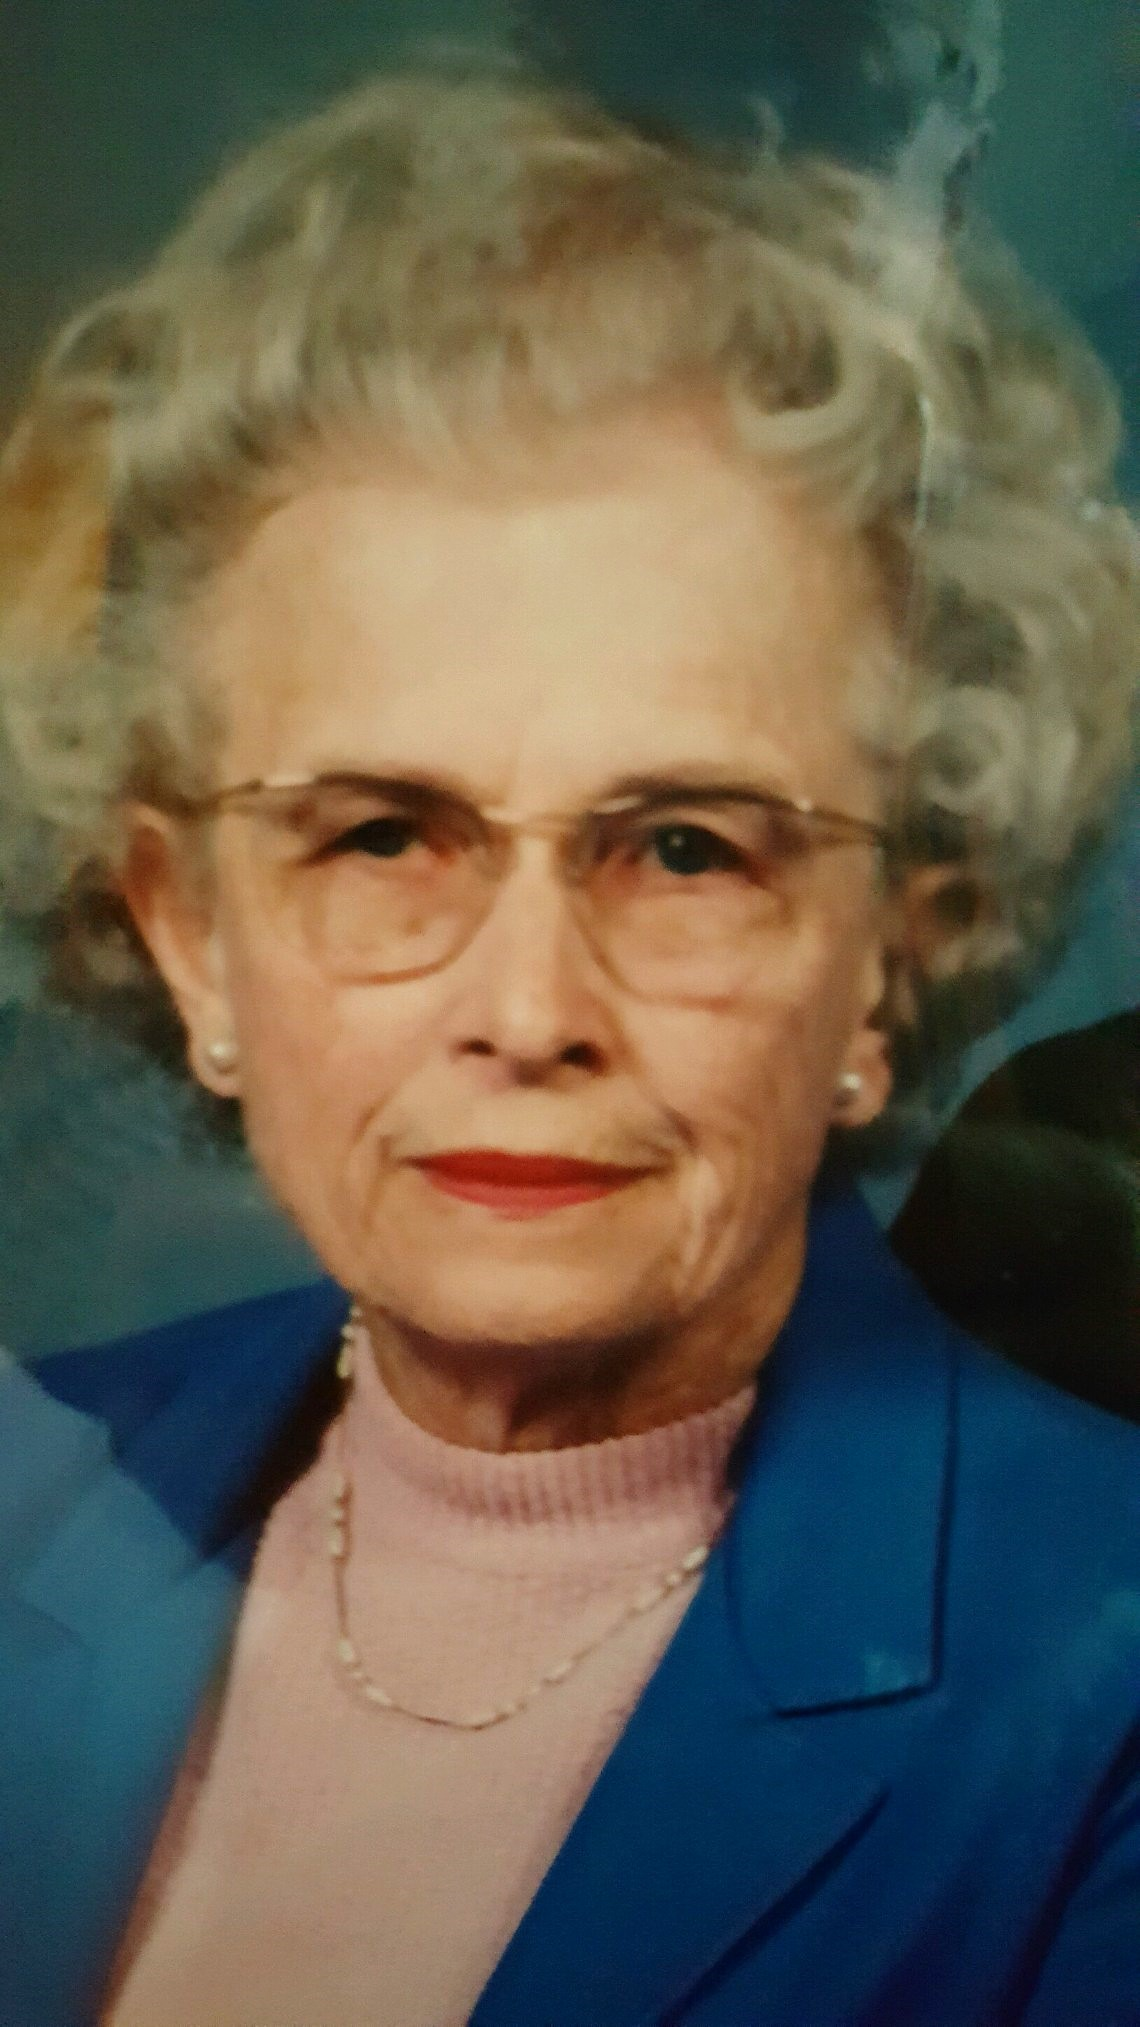 Eugene (OR) United States  city pictures gallery : Elsie Yount Brands, age 93, of Buffalo NY, formerly of Punxsutawney ...